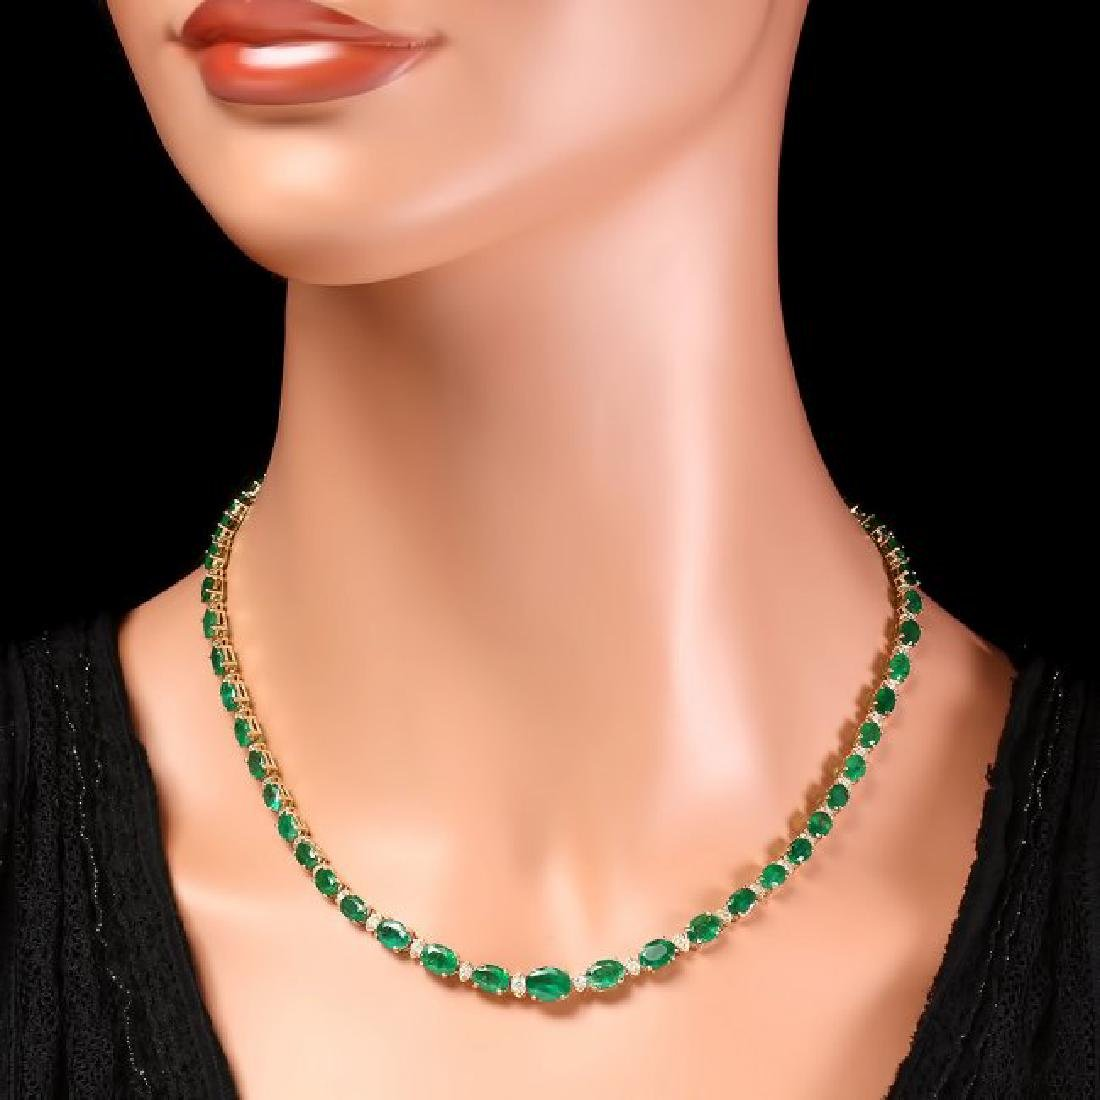 14k Gold 23ct Emerald 1.10ct Diamond Necklace - 6